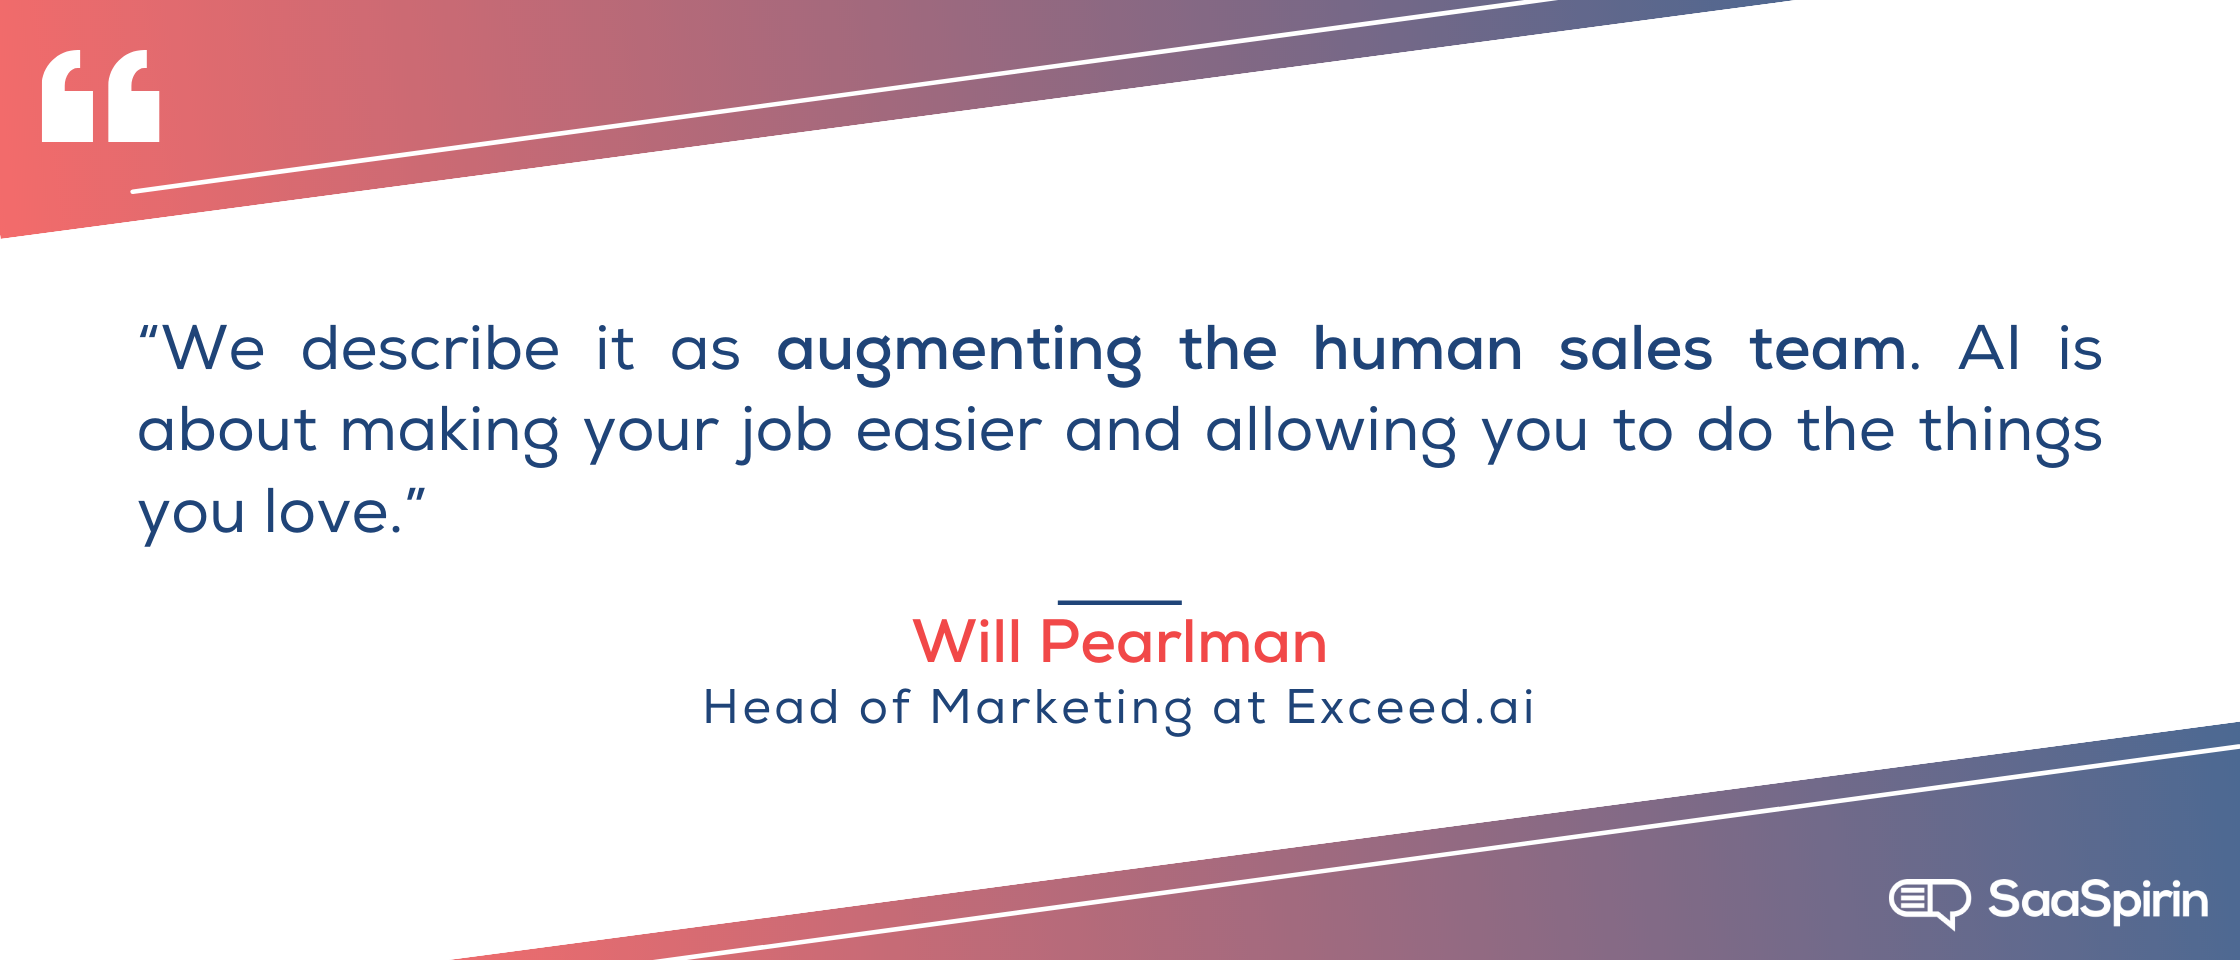 We-describe-it-as-augmenting-the-human-sales-team-AI-is-about-making-your-job-easier-and-allowing-you-to-do-the-things-you-love.png